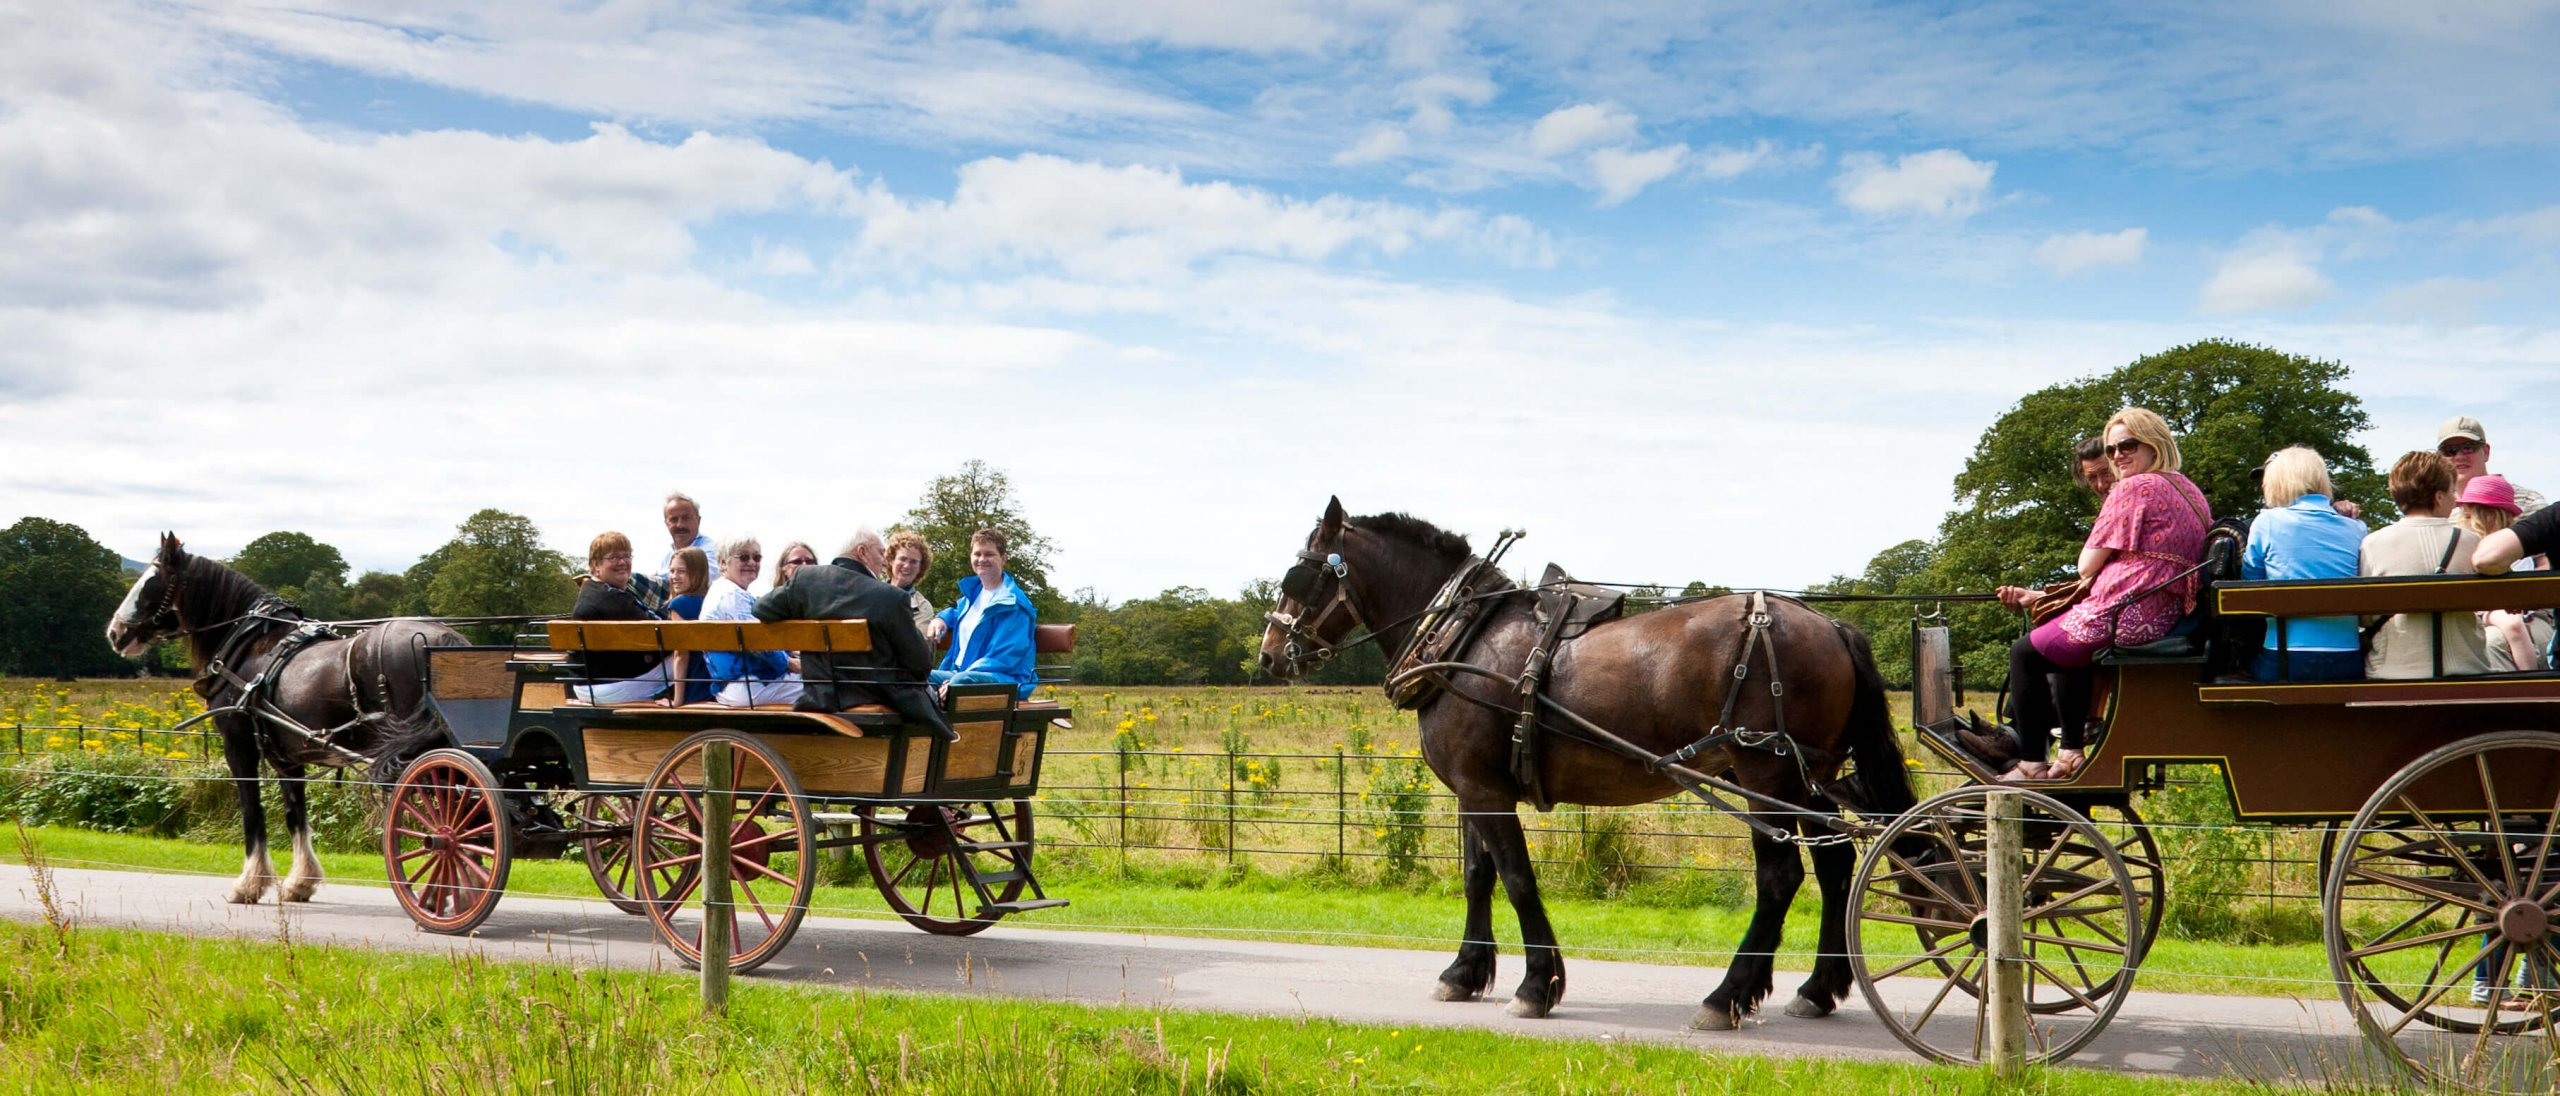 Two horse-drawn jaunting carriages in Killarney National Park, Ireland